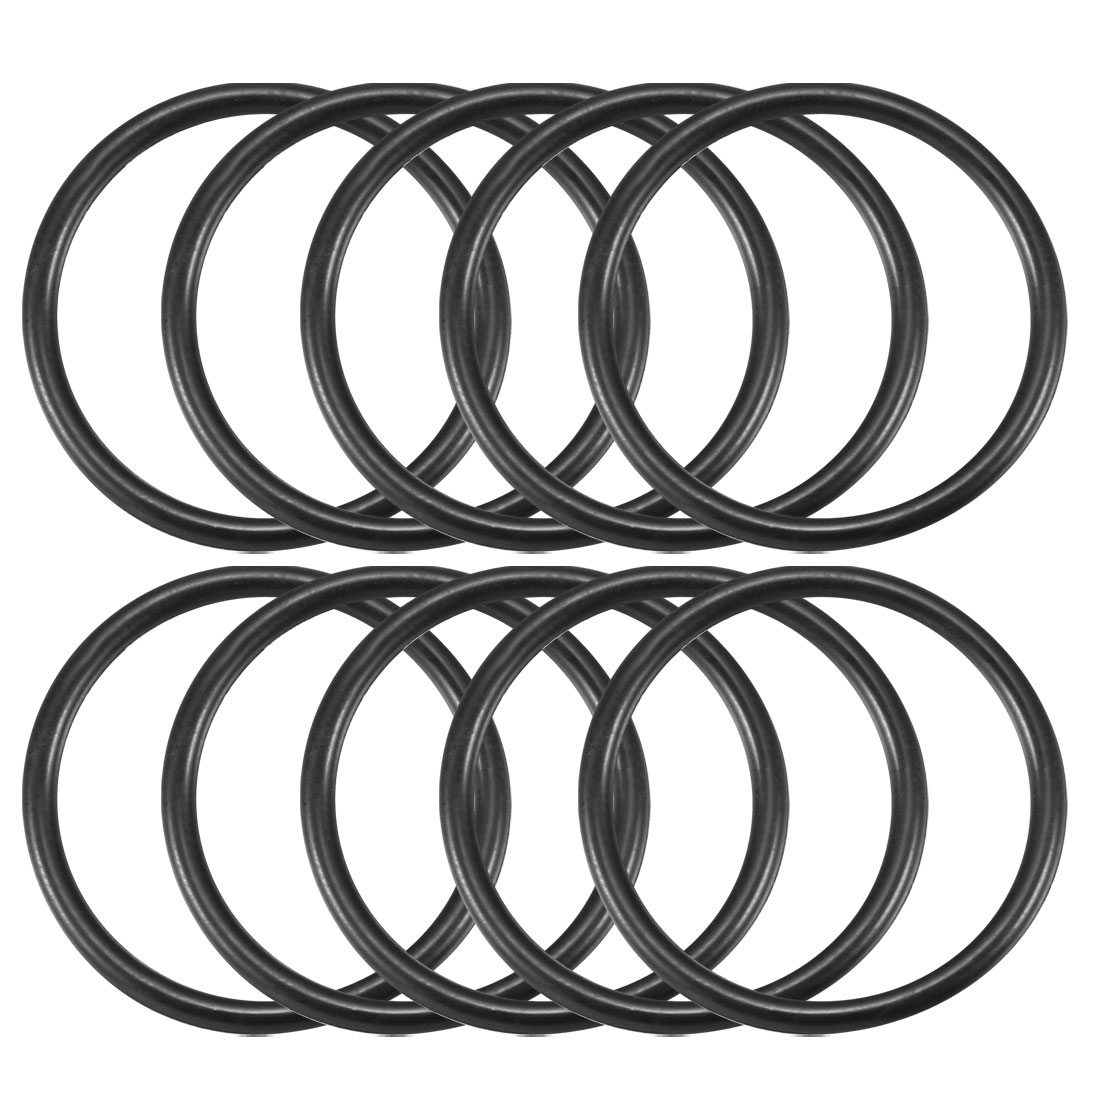 25mm x 21mm x 2mm Rubber Oil Gas Seal Tap Washer Gasket O Ring Black 10pcs